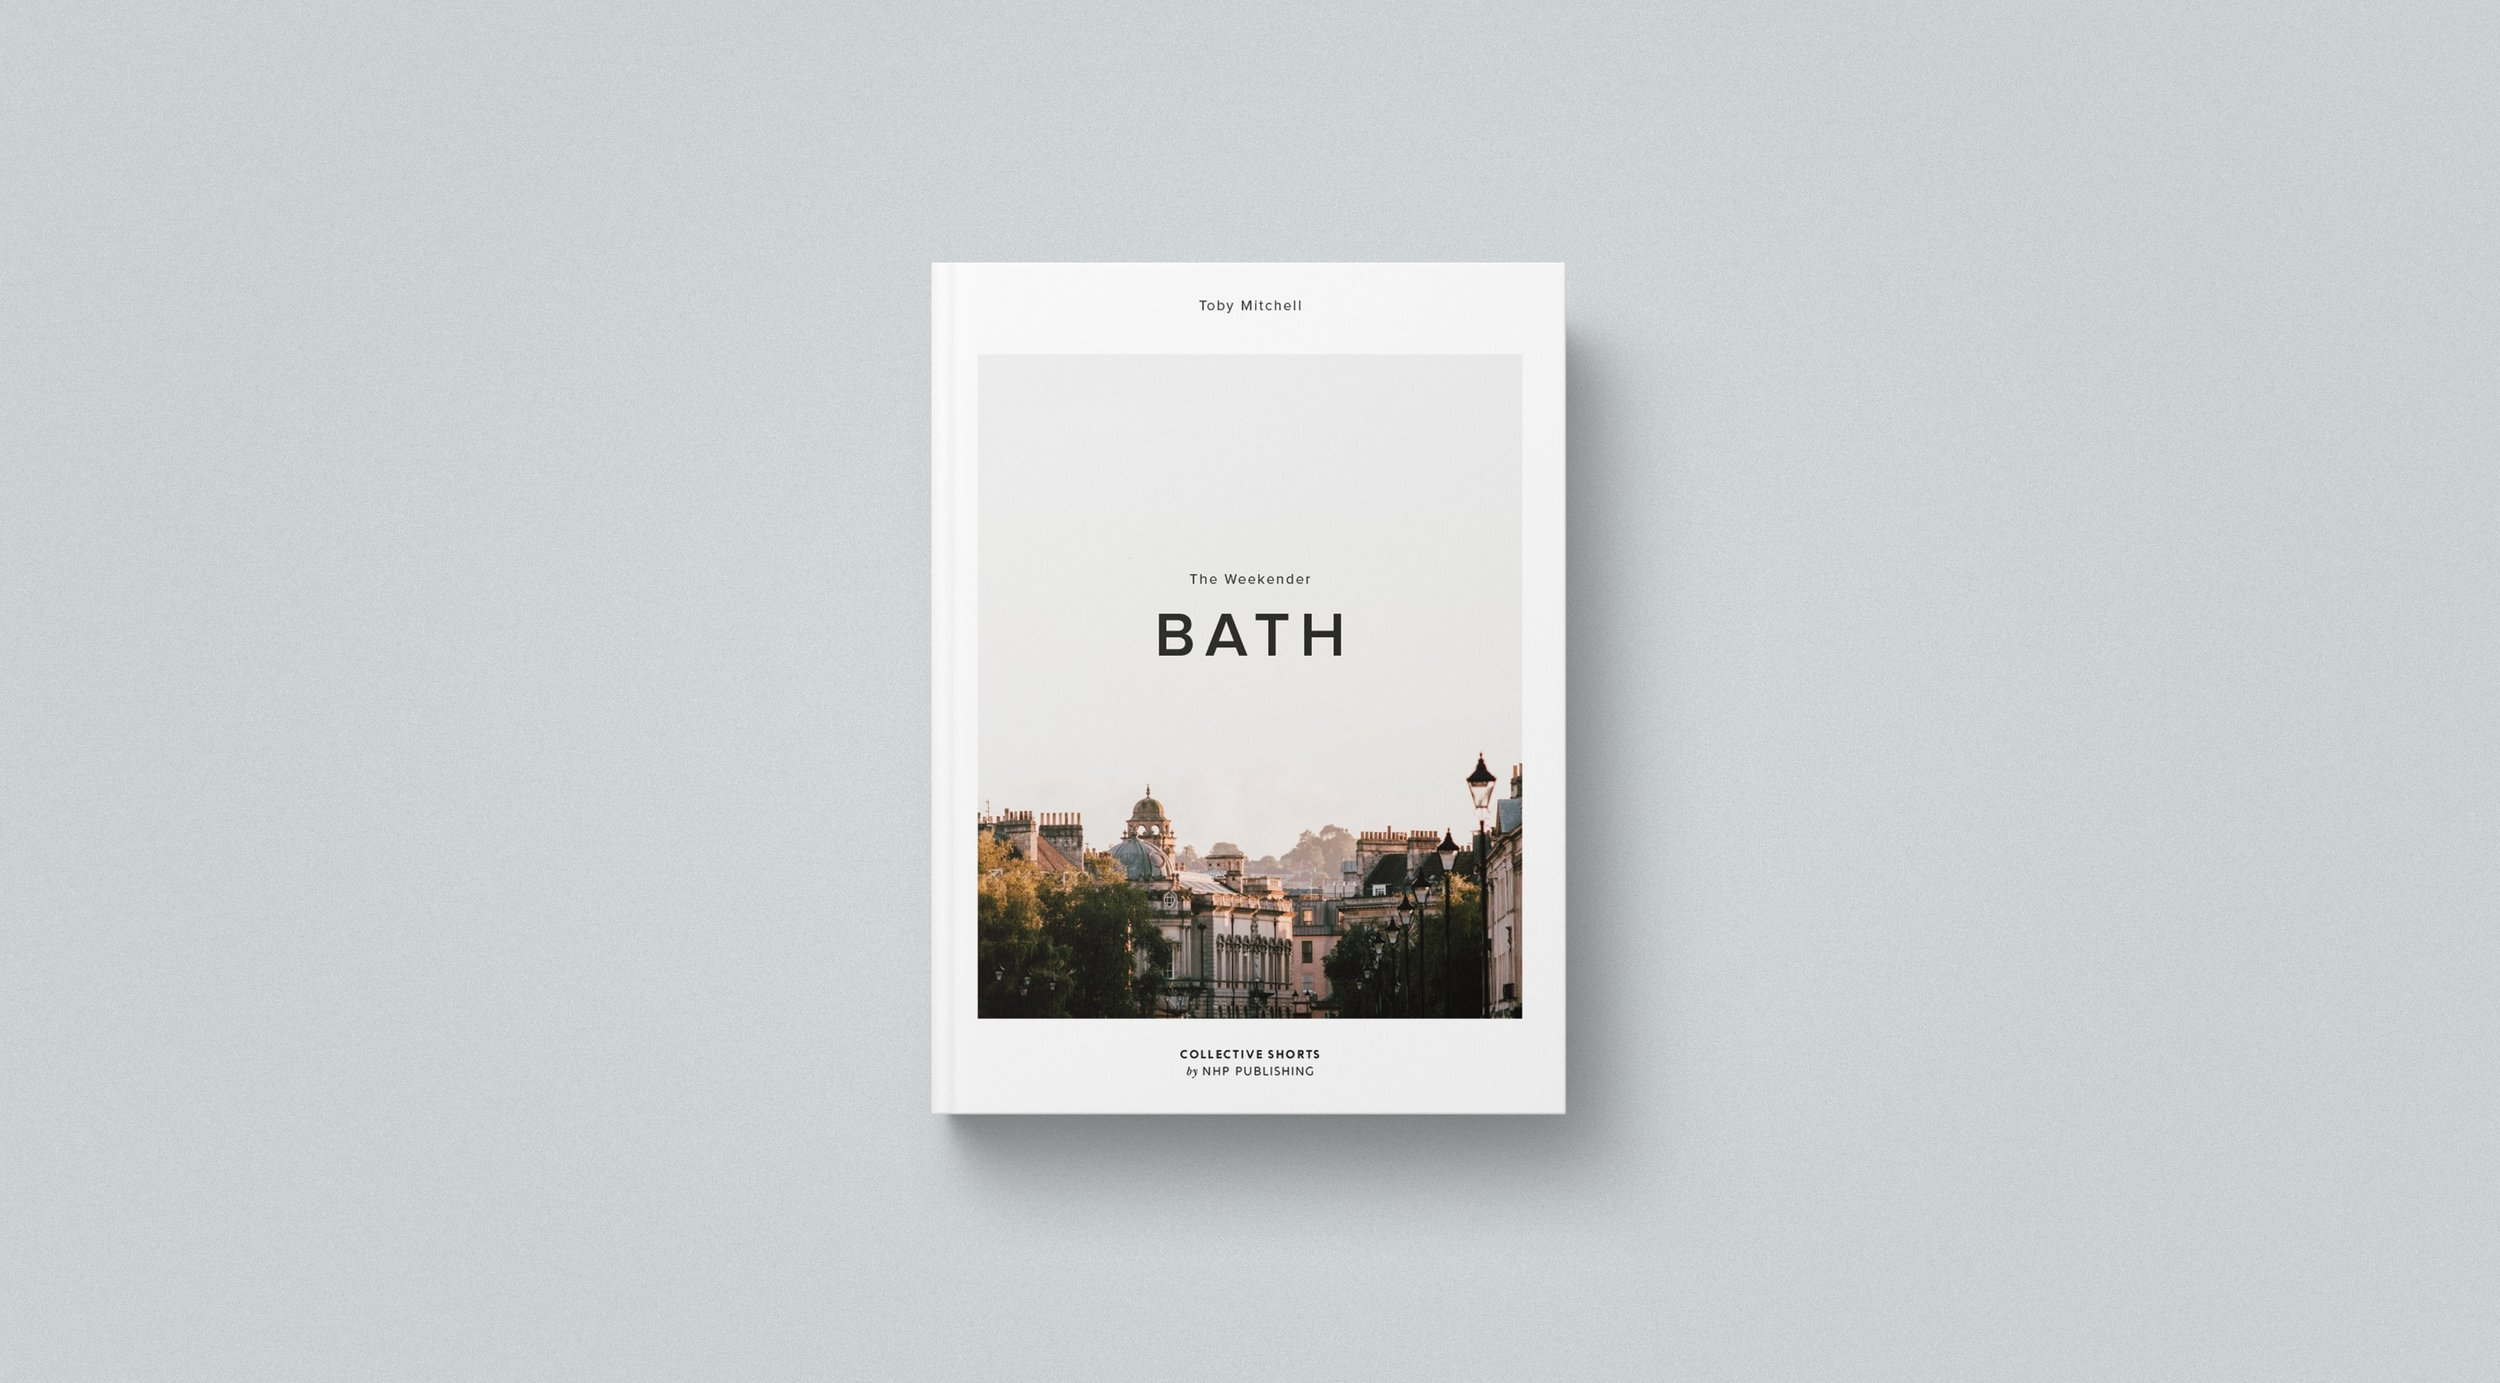 A visual narrative of a weekend spent in the English city of Bath - The first book in a new series published by New Heroes & PioneersBUY TODAY